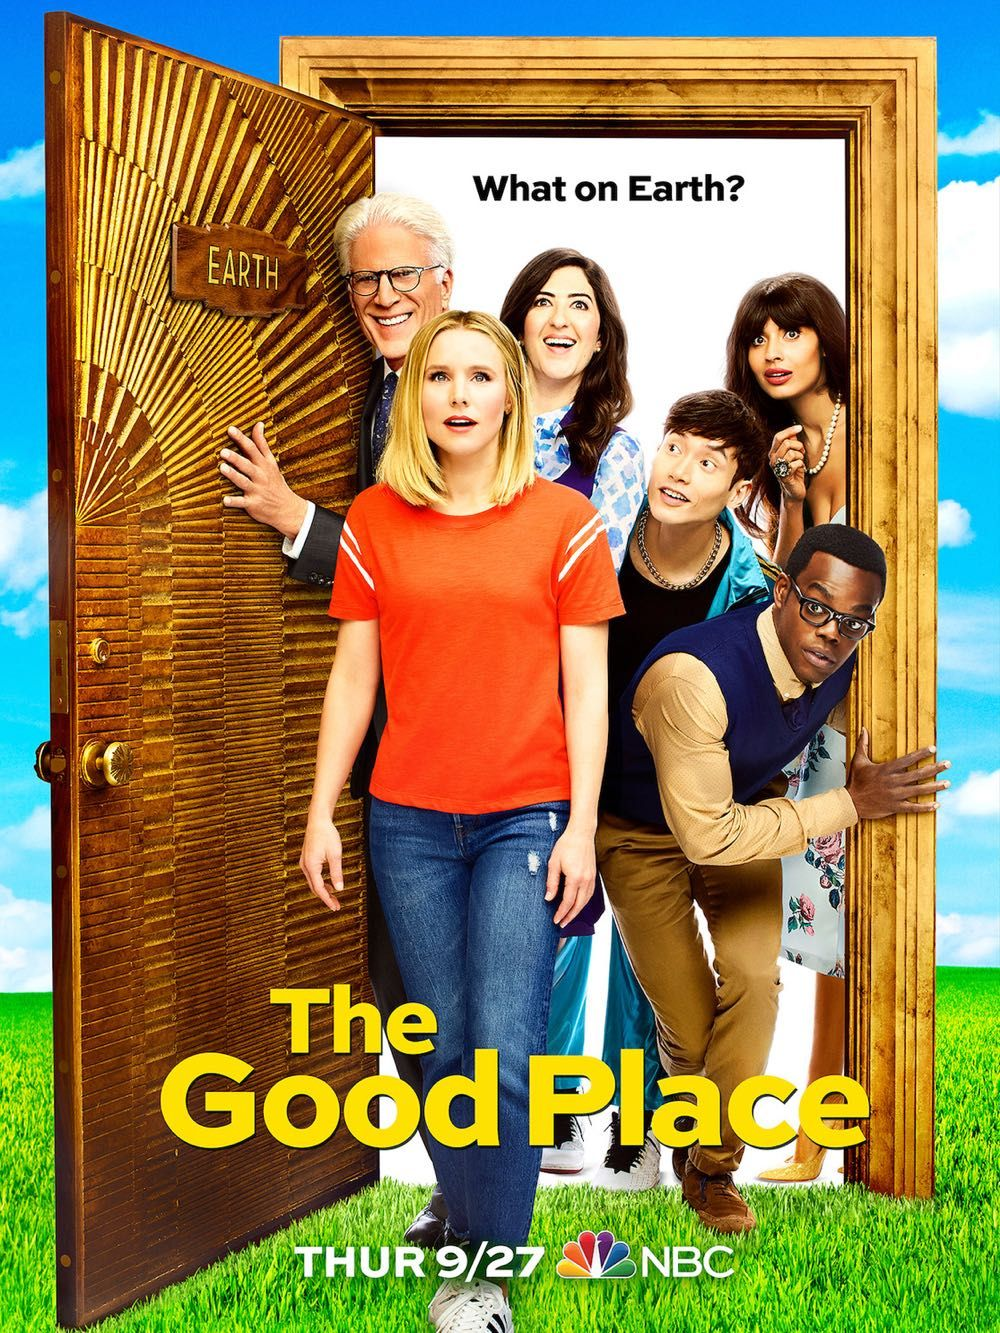 The Good Place Season 3 Poster Key Art The Good Place